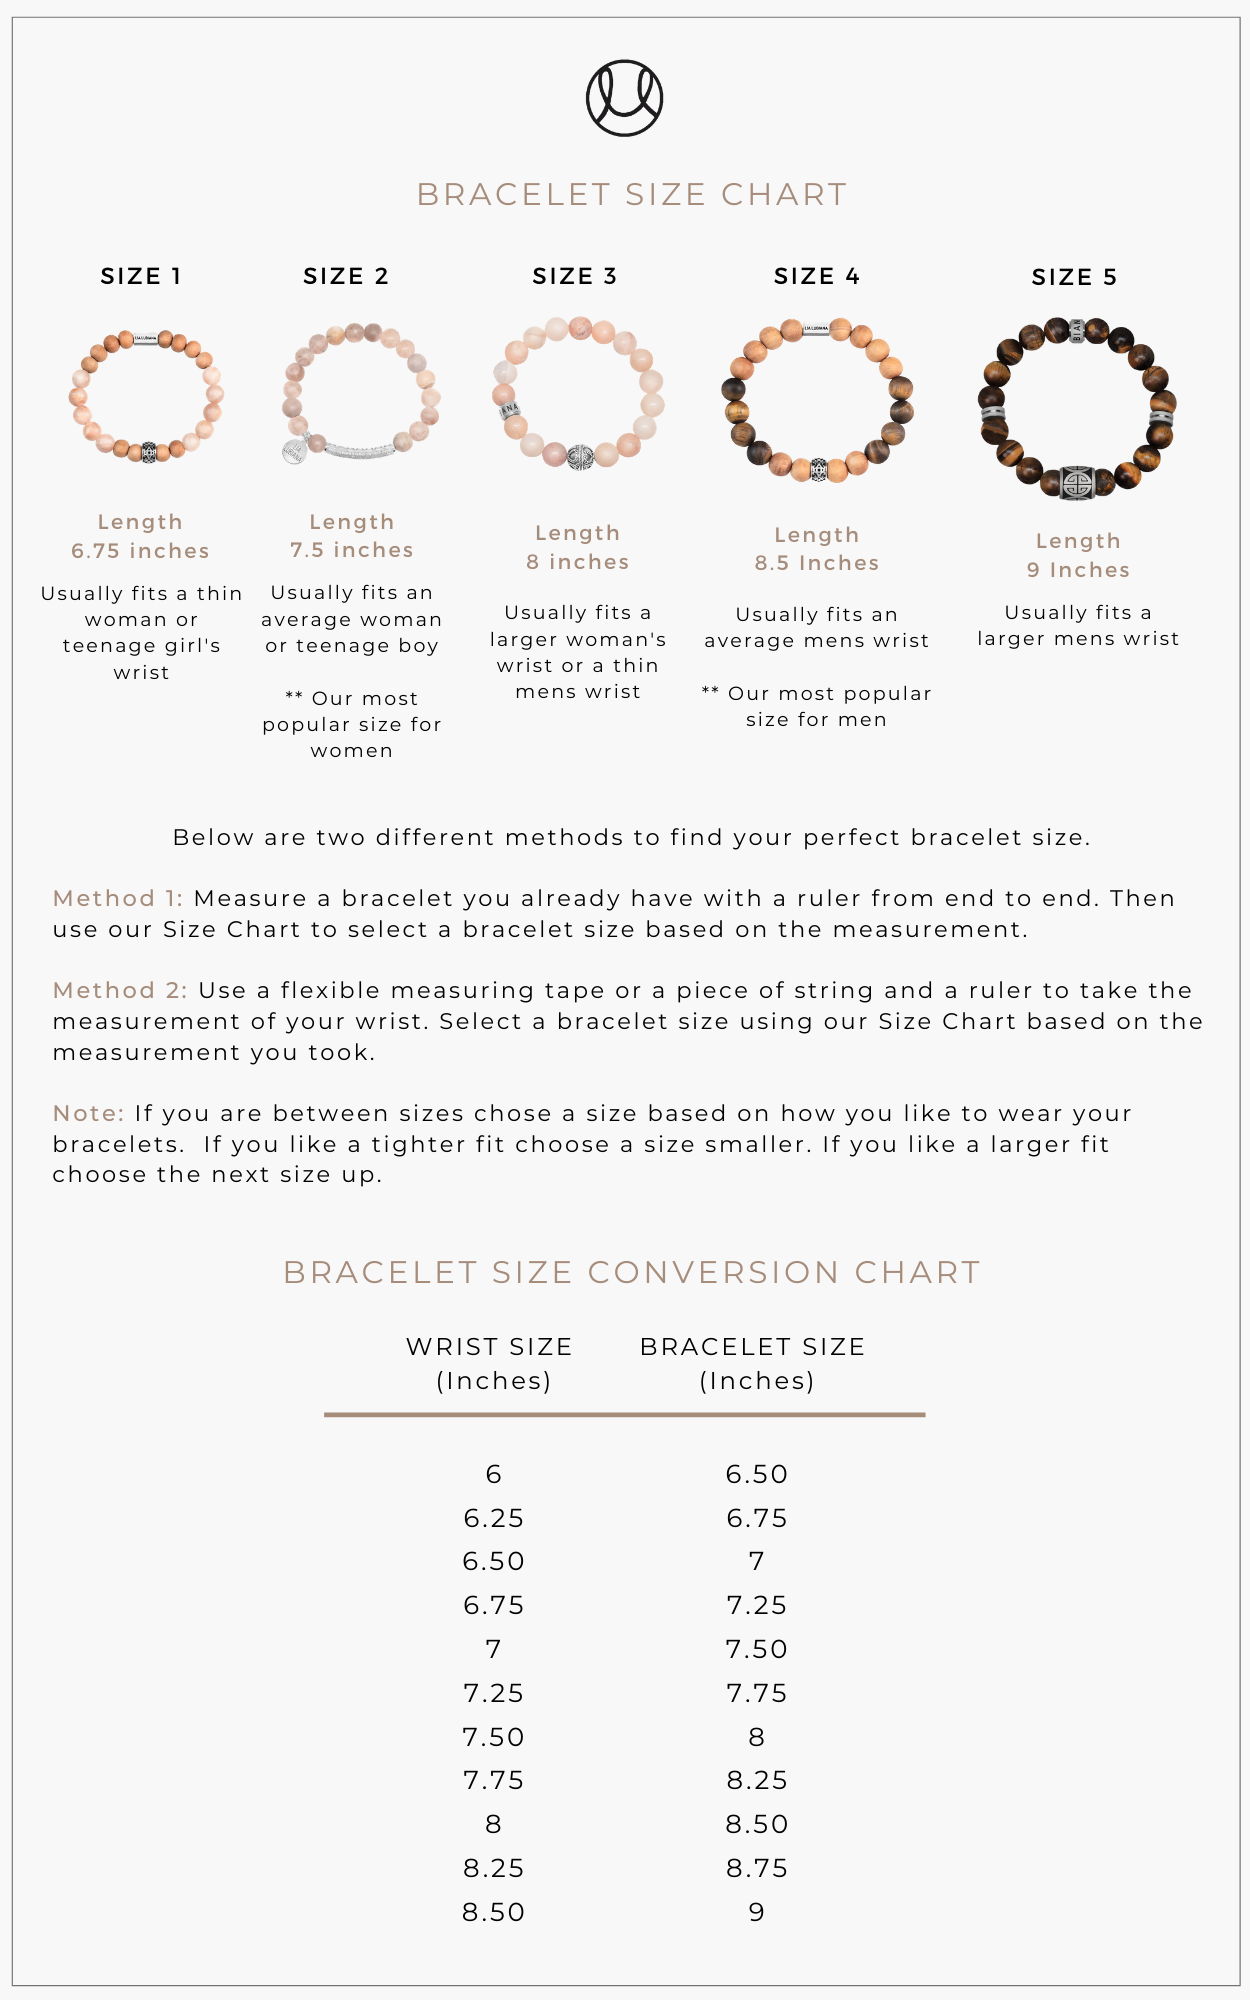 Lia Lubiana - Sizing Guide